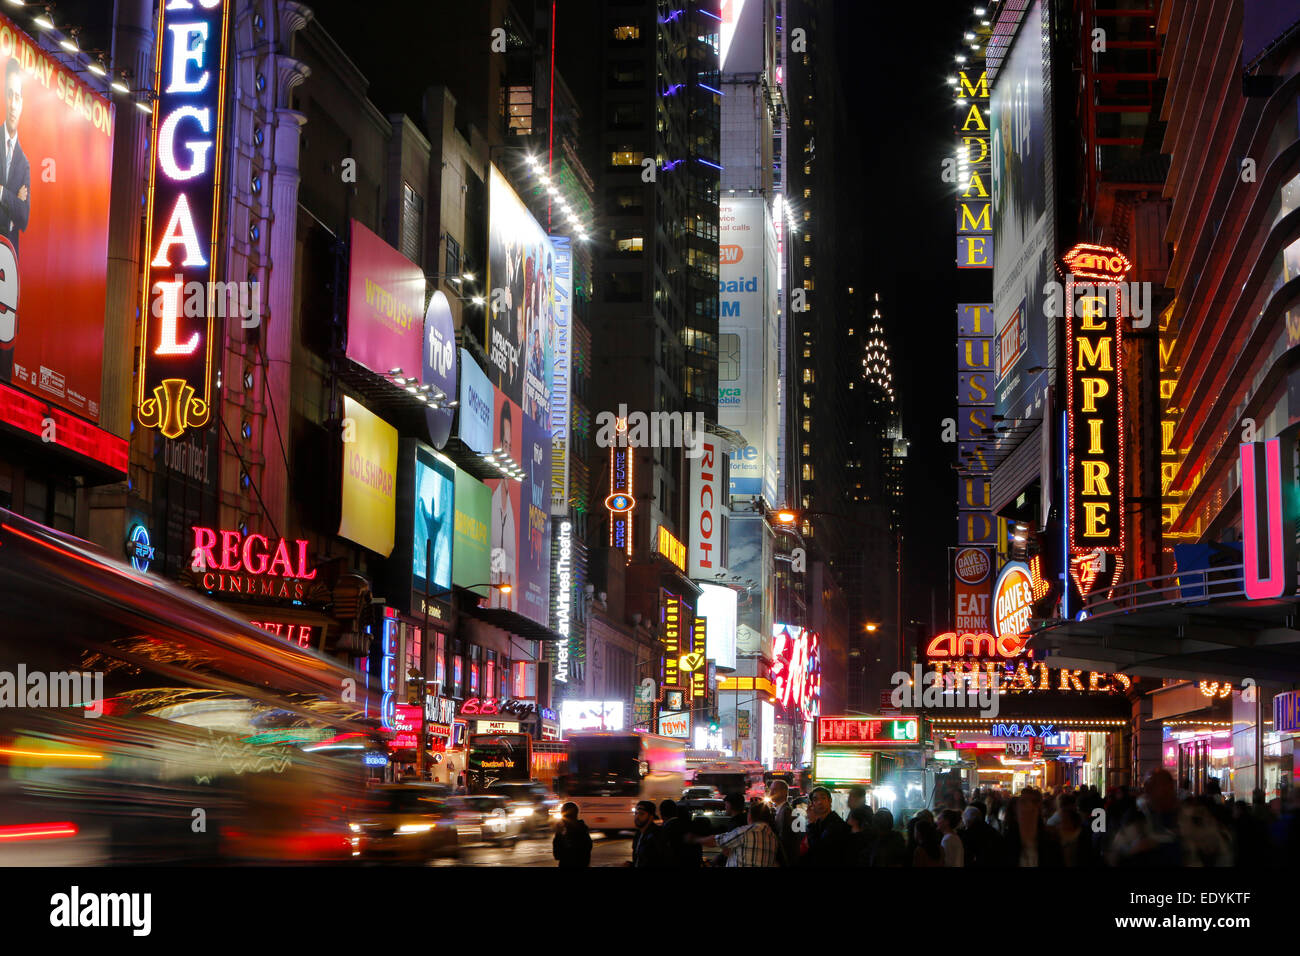 Neon signs of W 42nd Street, Chrysler Building at the back, New York City, New York, United States - Stock Image